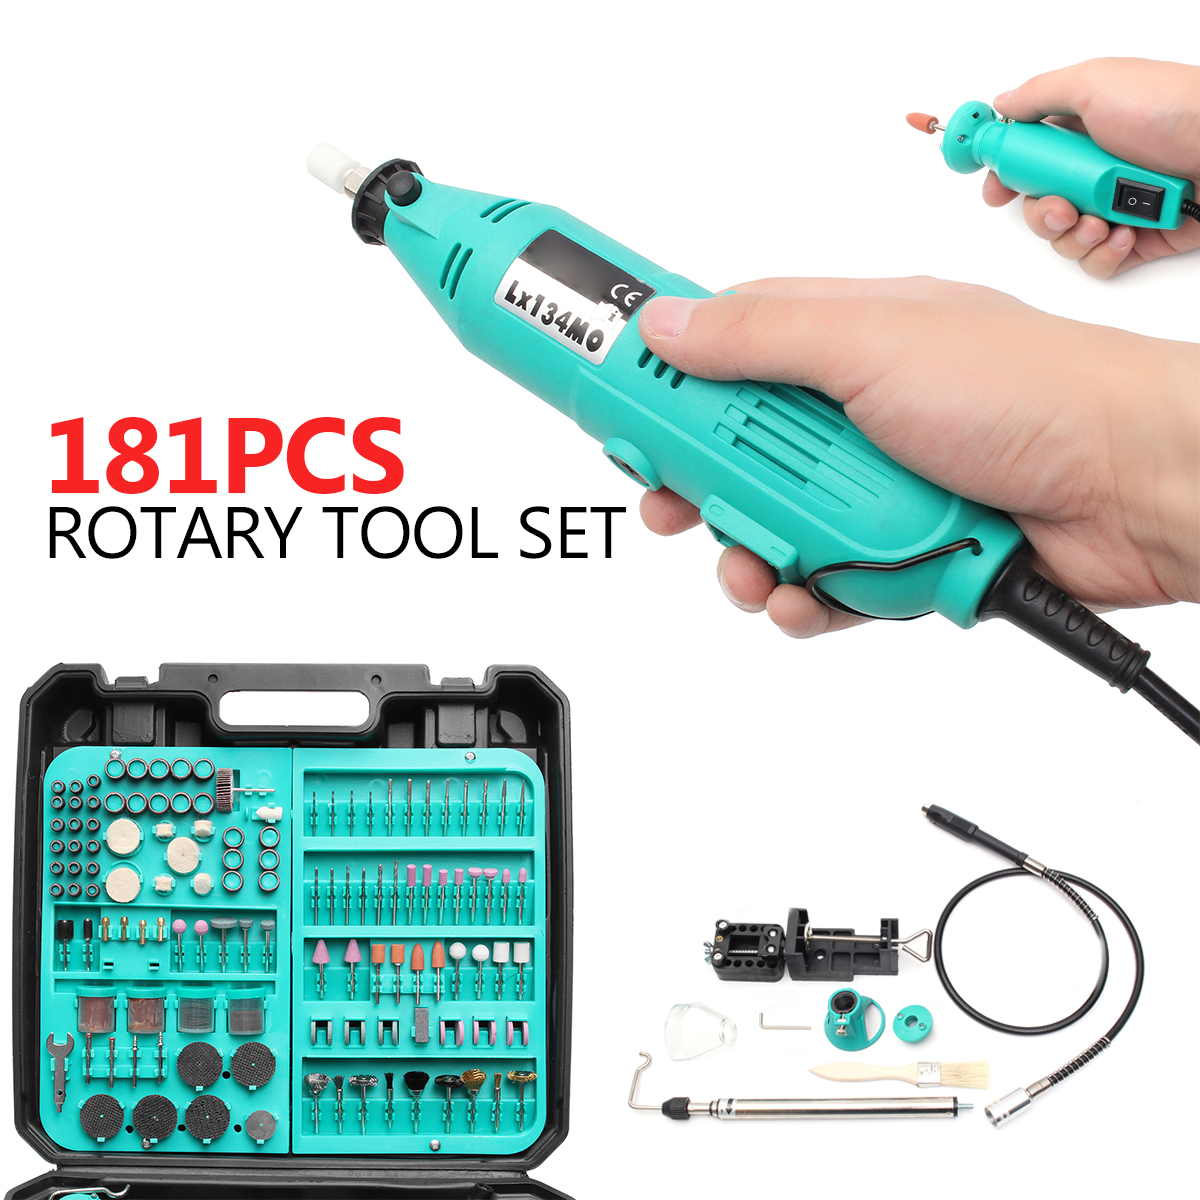 181Pcs Mini Drill Electric Grinder Sanding Polishing Rotary Tool with Accessory Rotary Tool Set Engraver Sander Polisher Craft 206pcs 1 8 dremel drill engraver electric grinder tool accessories rotary tool set sanding grinding machine polishing accessory